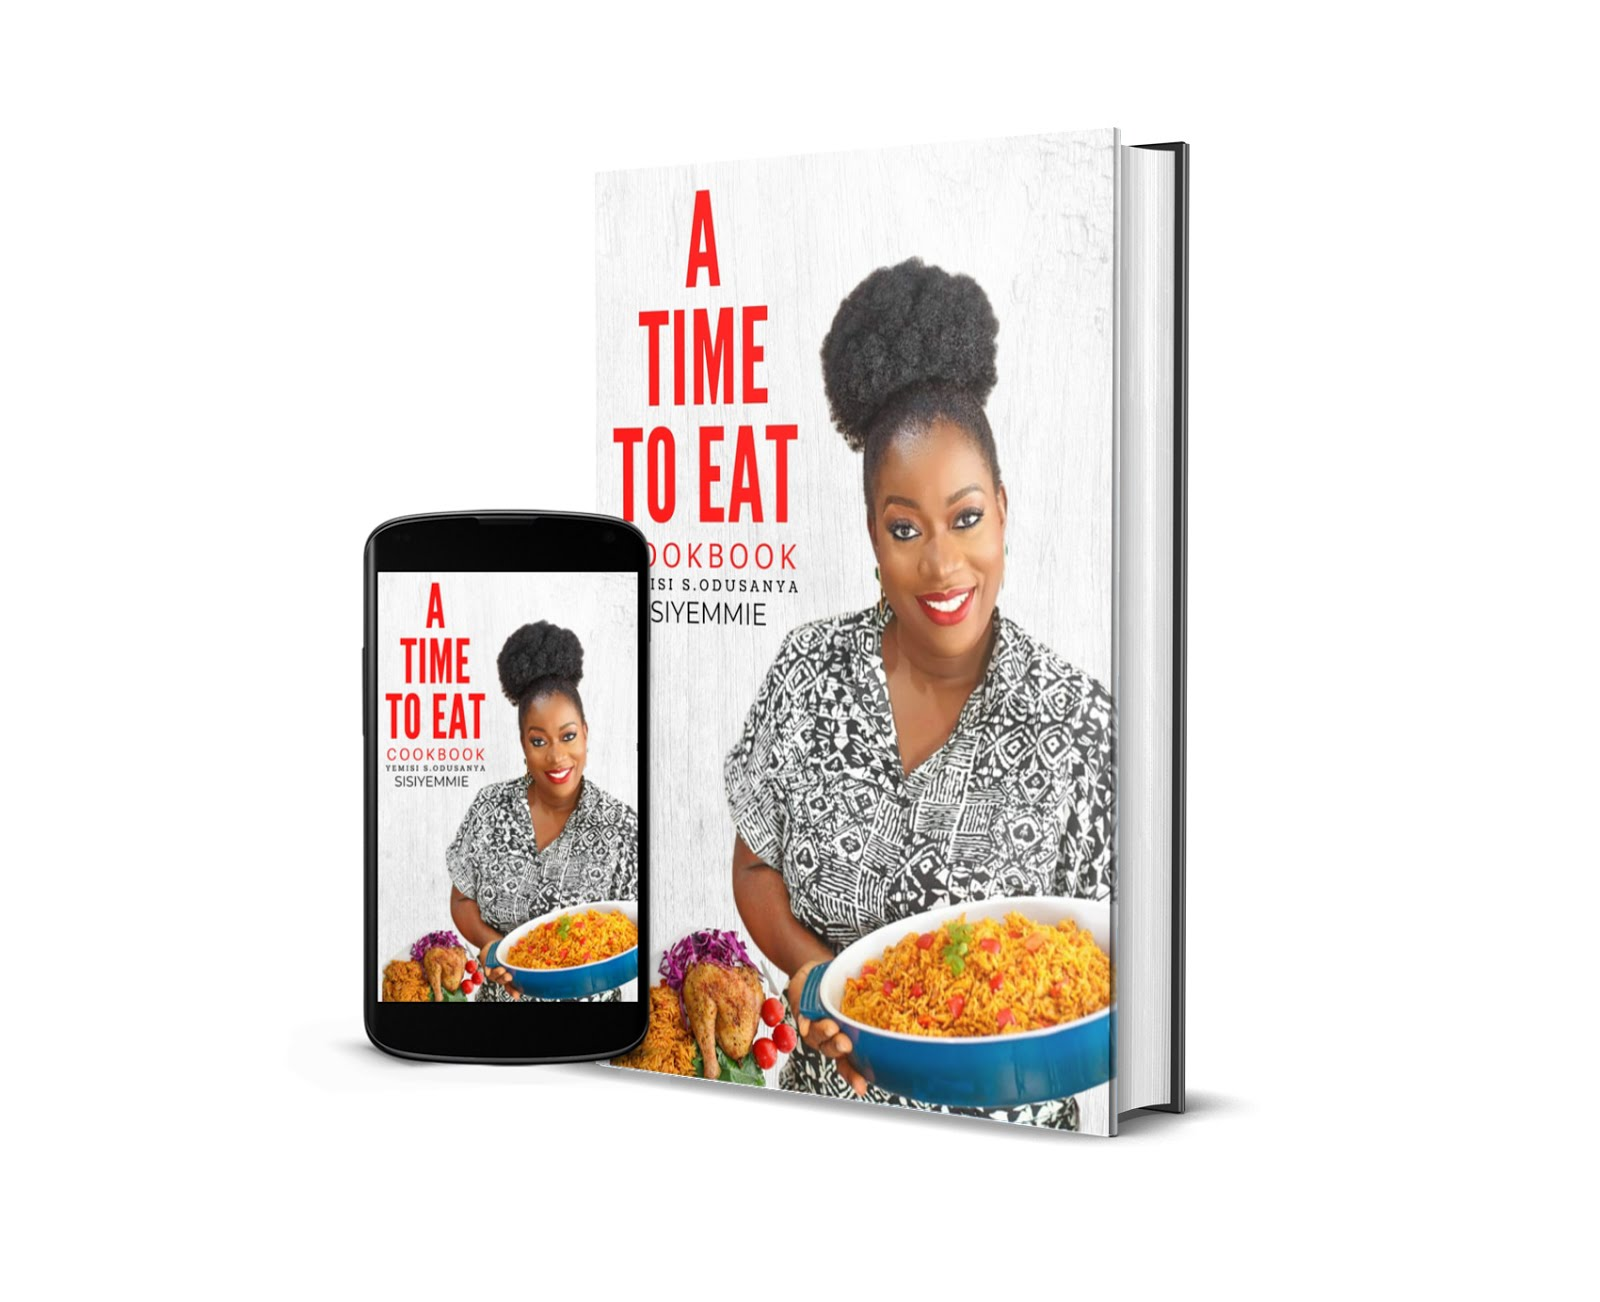 BUY MY DIGITAL COOKBOOK